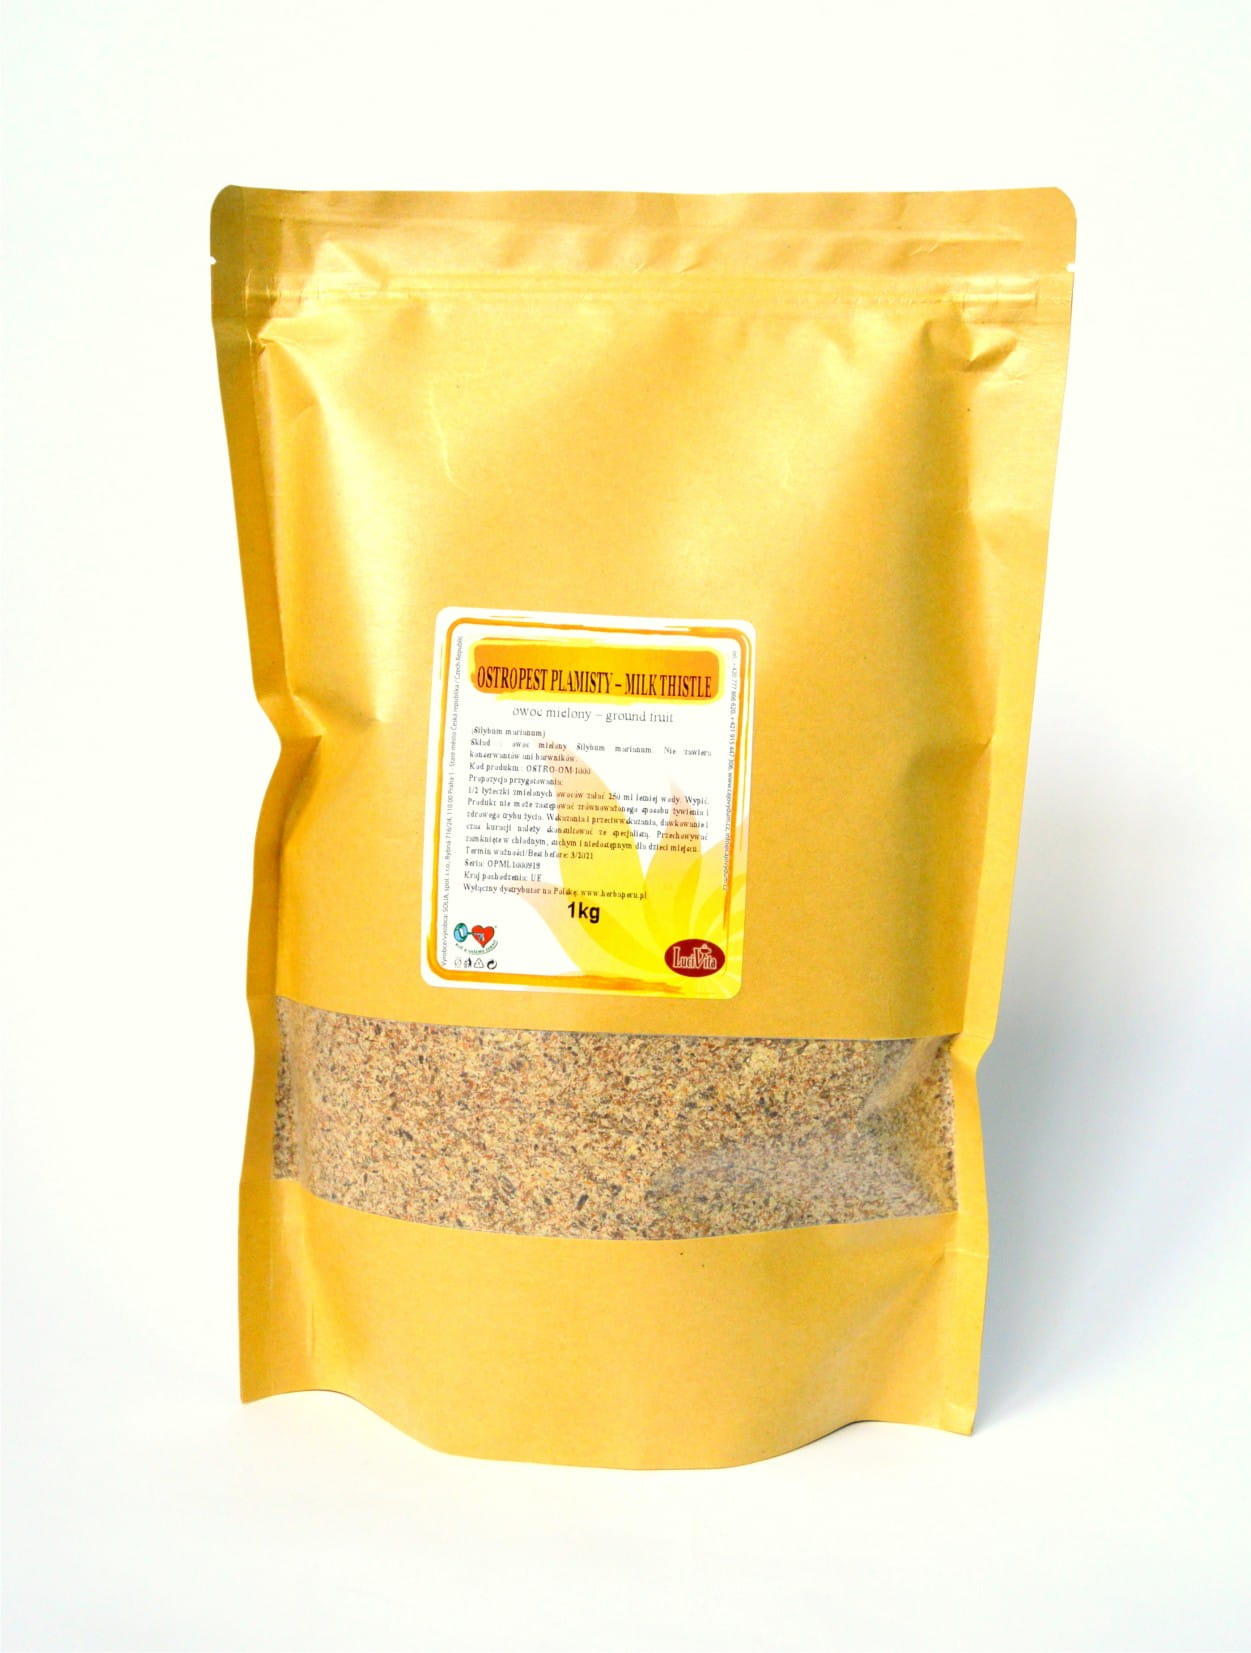 Milk (Marian) thistle - ground fruit - 1000g (1kg)